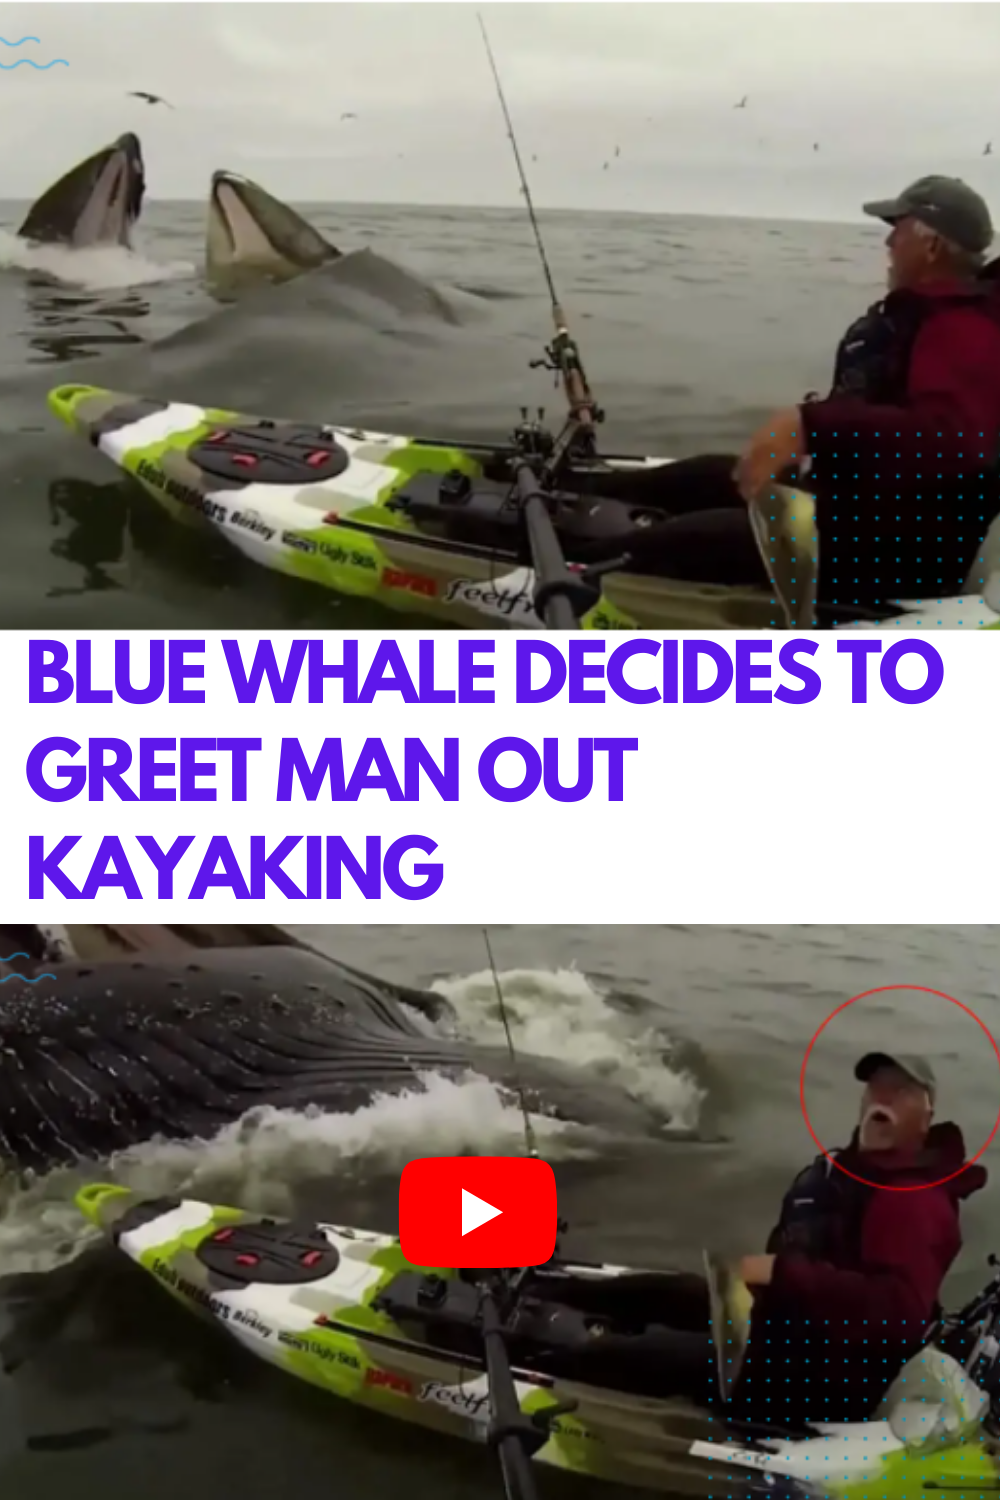 Blue whale decides to greet man out kayaking